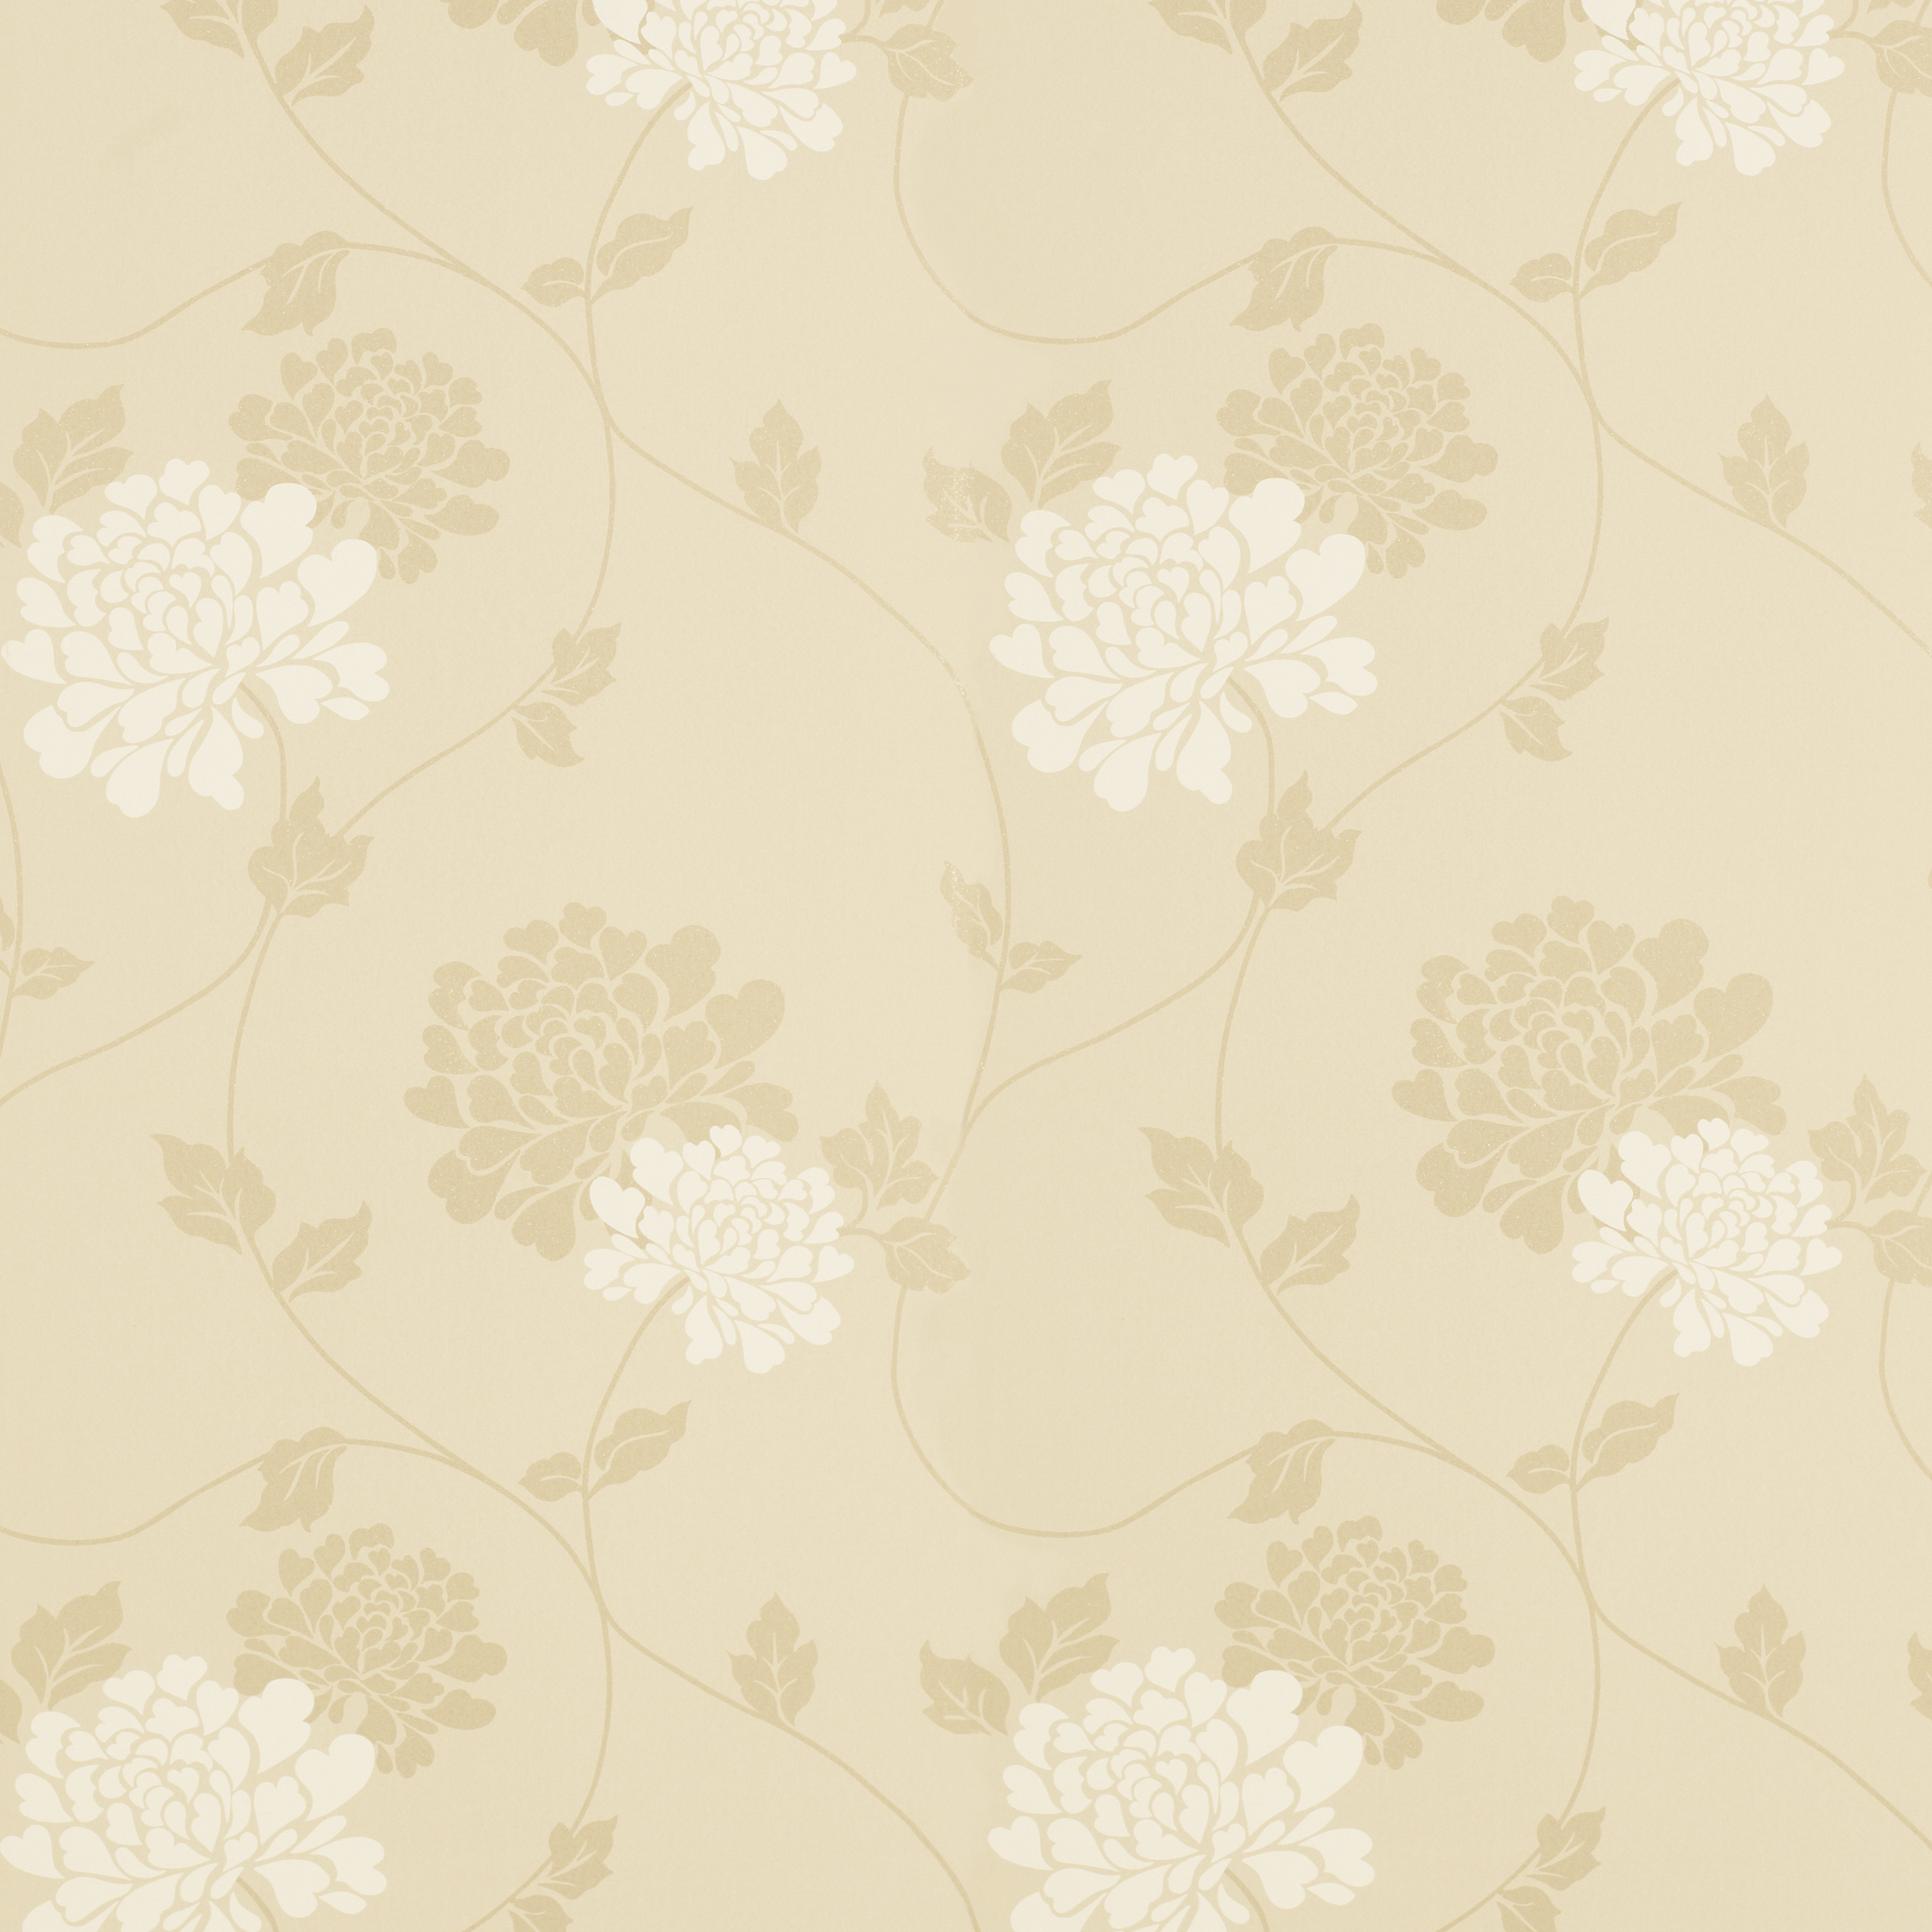 Champagne Color Wallpaper